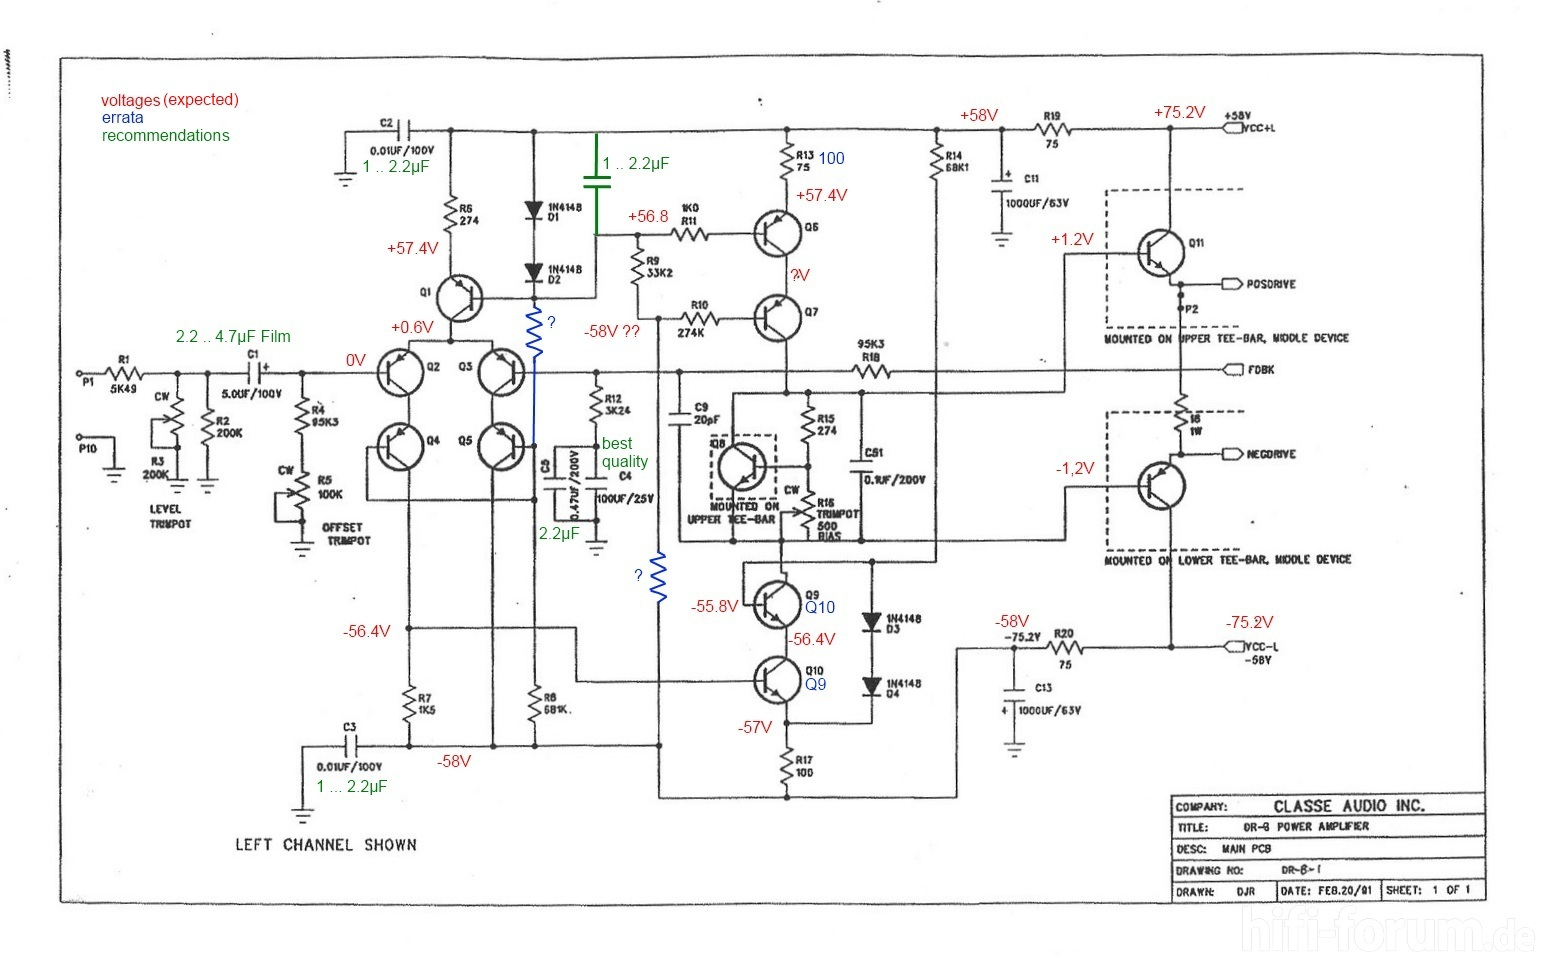 Classe Audio Dr 8 Schematic With Errata And Voltages